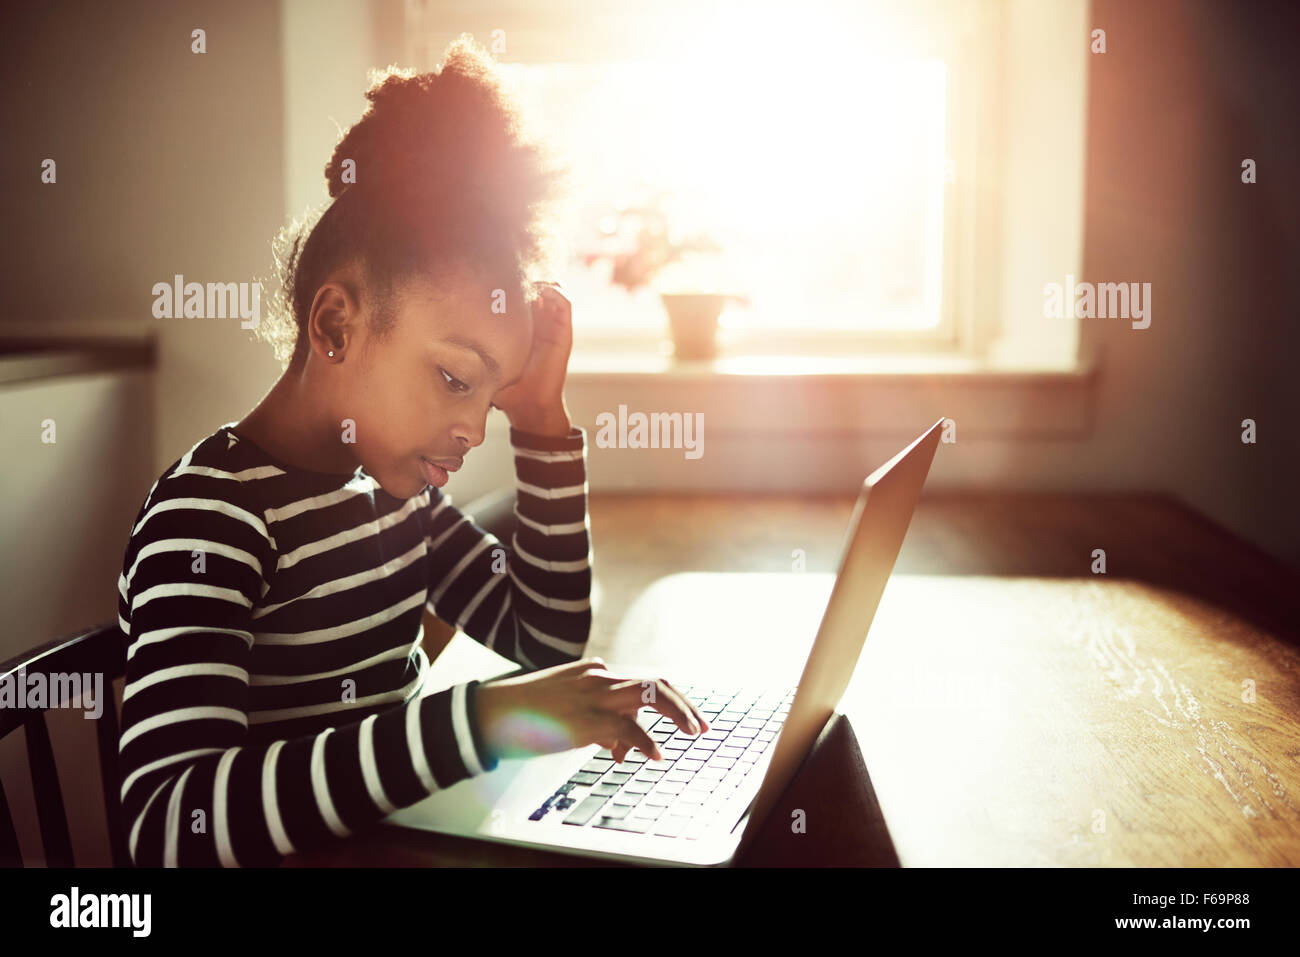 young black girl working on her homework at home typing information on a laptop computer, side view against a bright - Stock Image